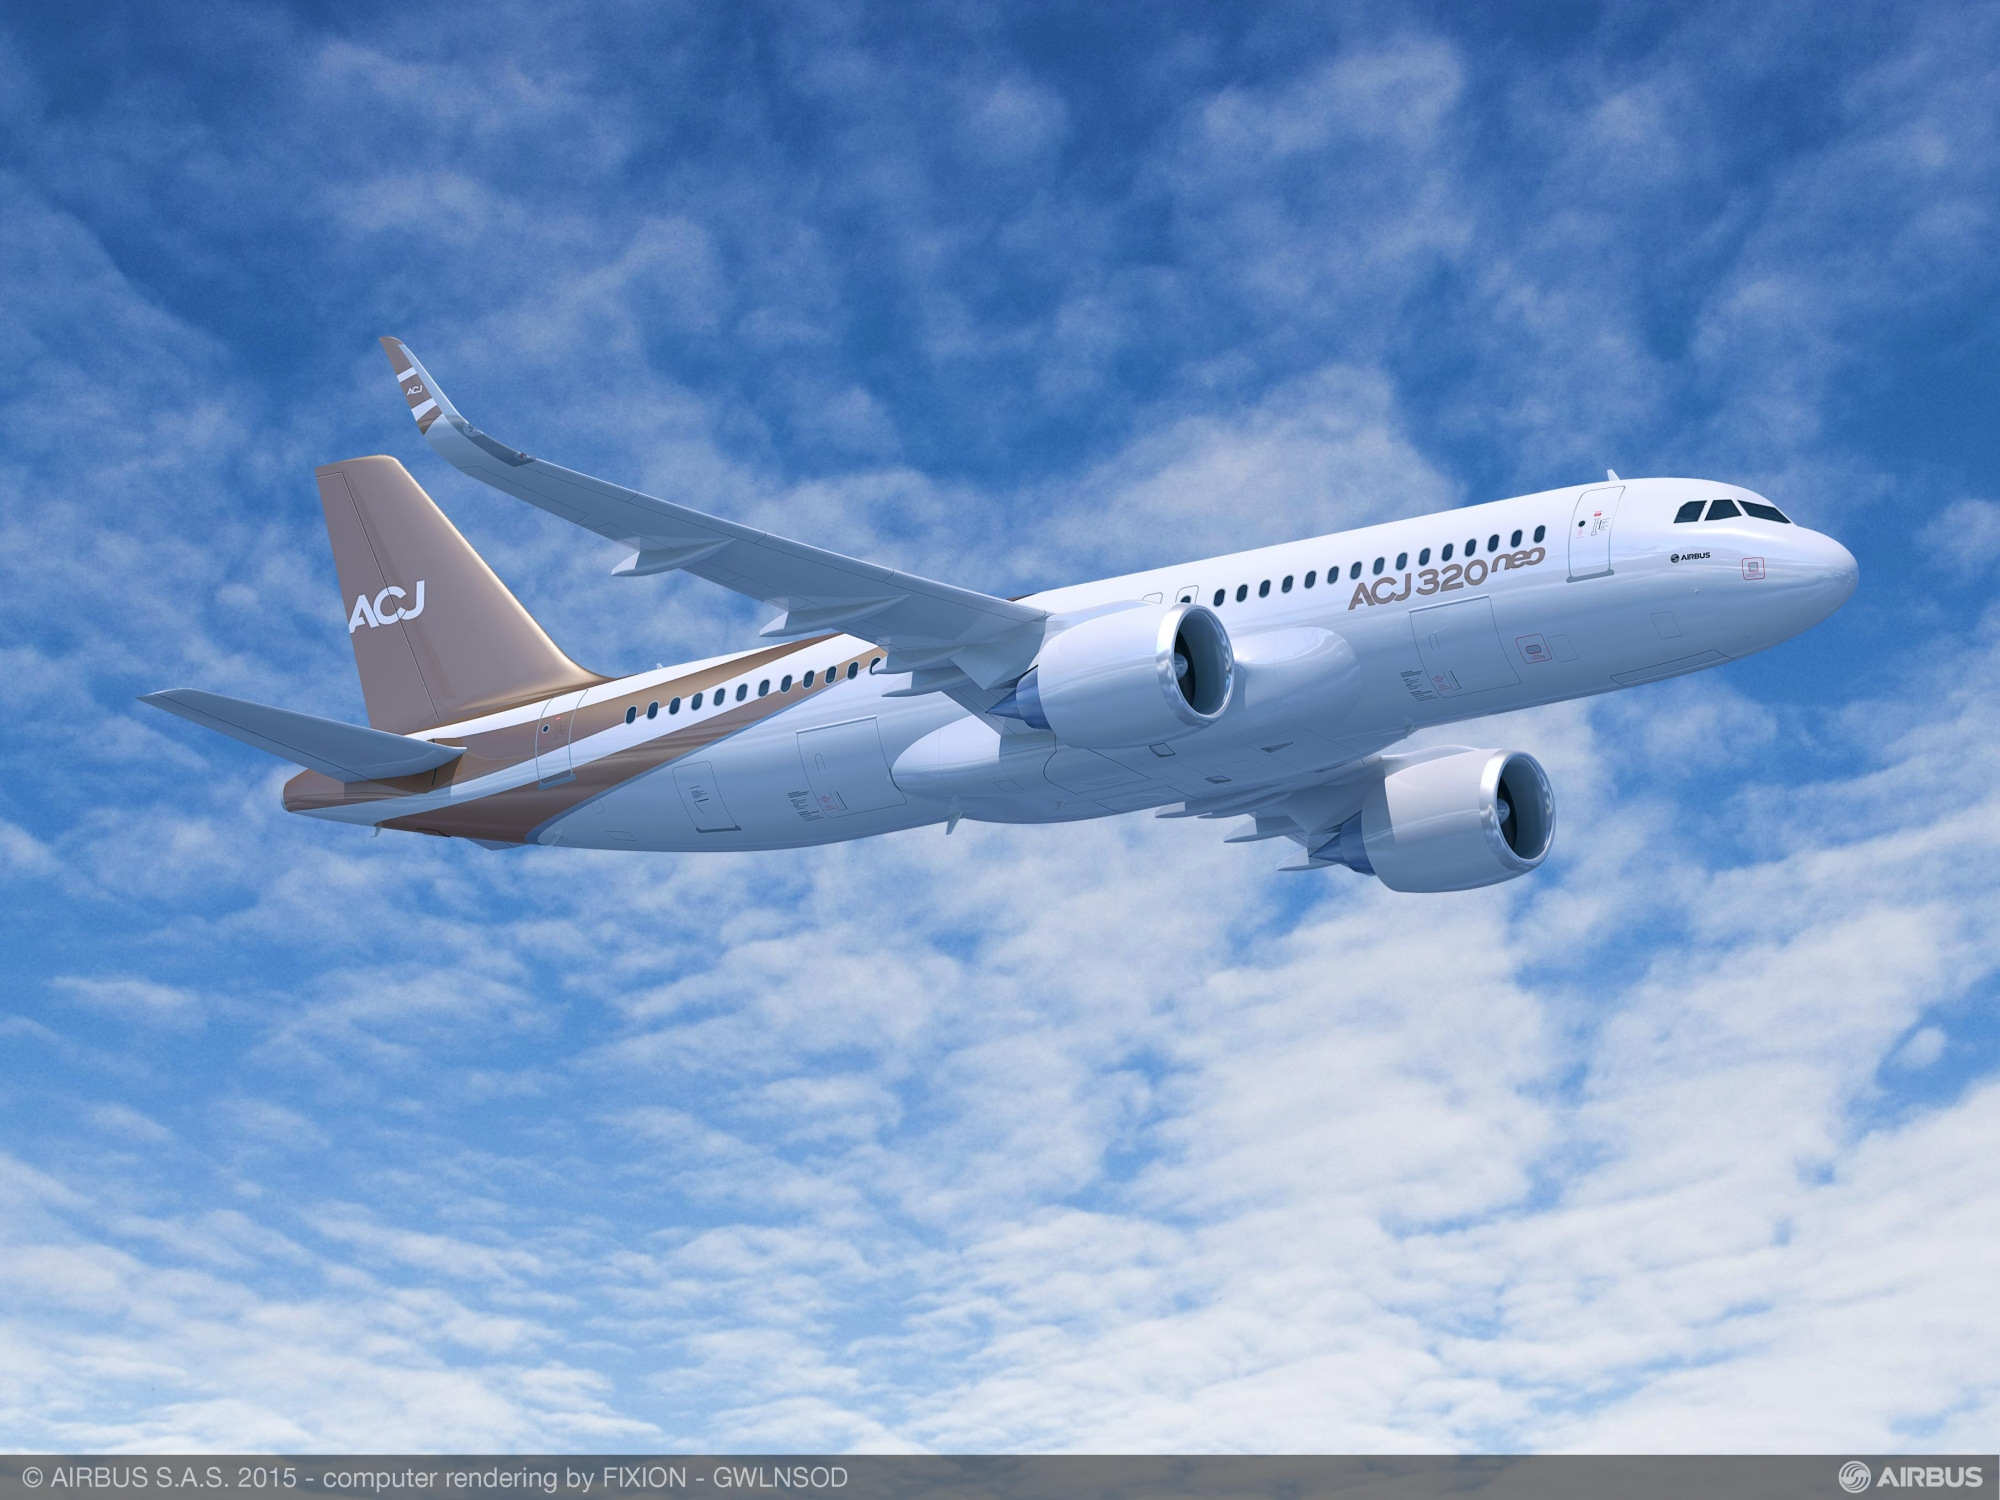 Airbus Corporate Jets Wins New ACJ320neo Order Airbus